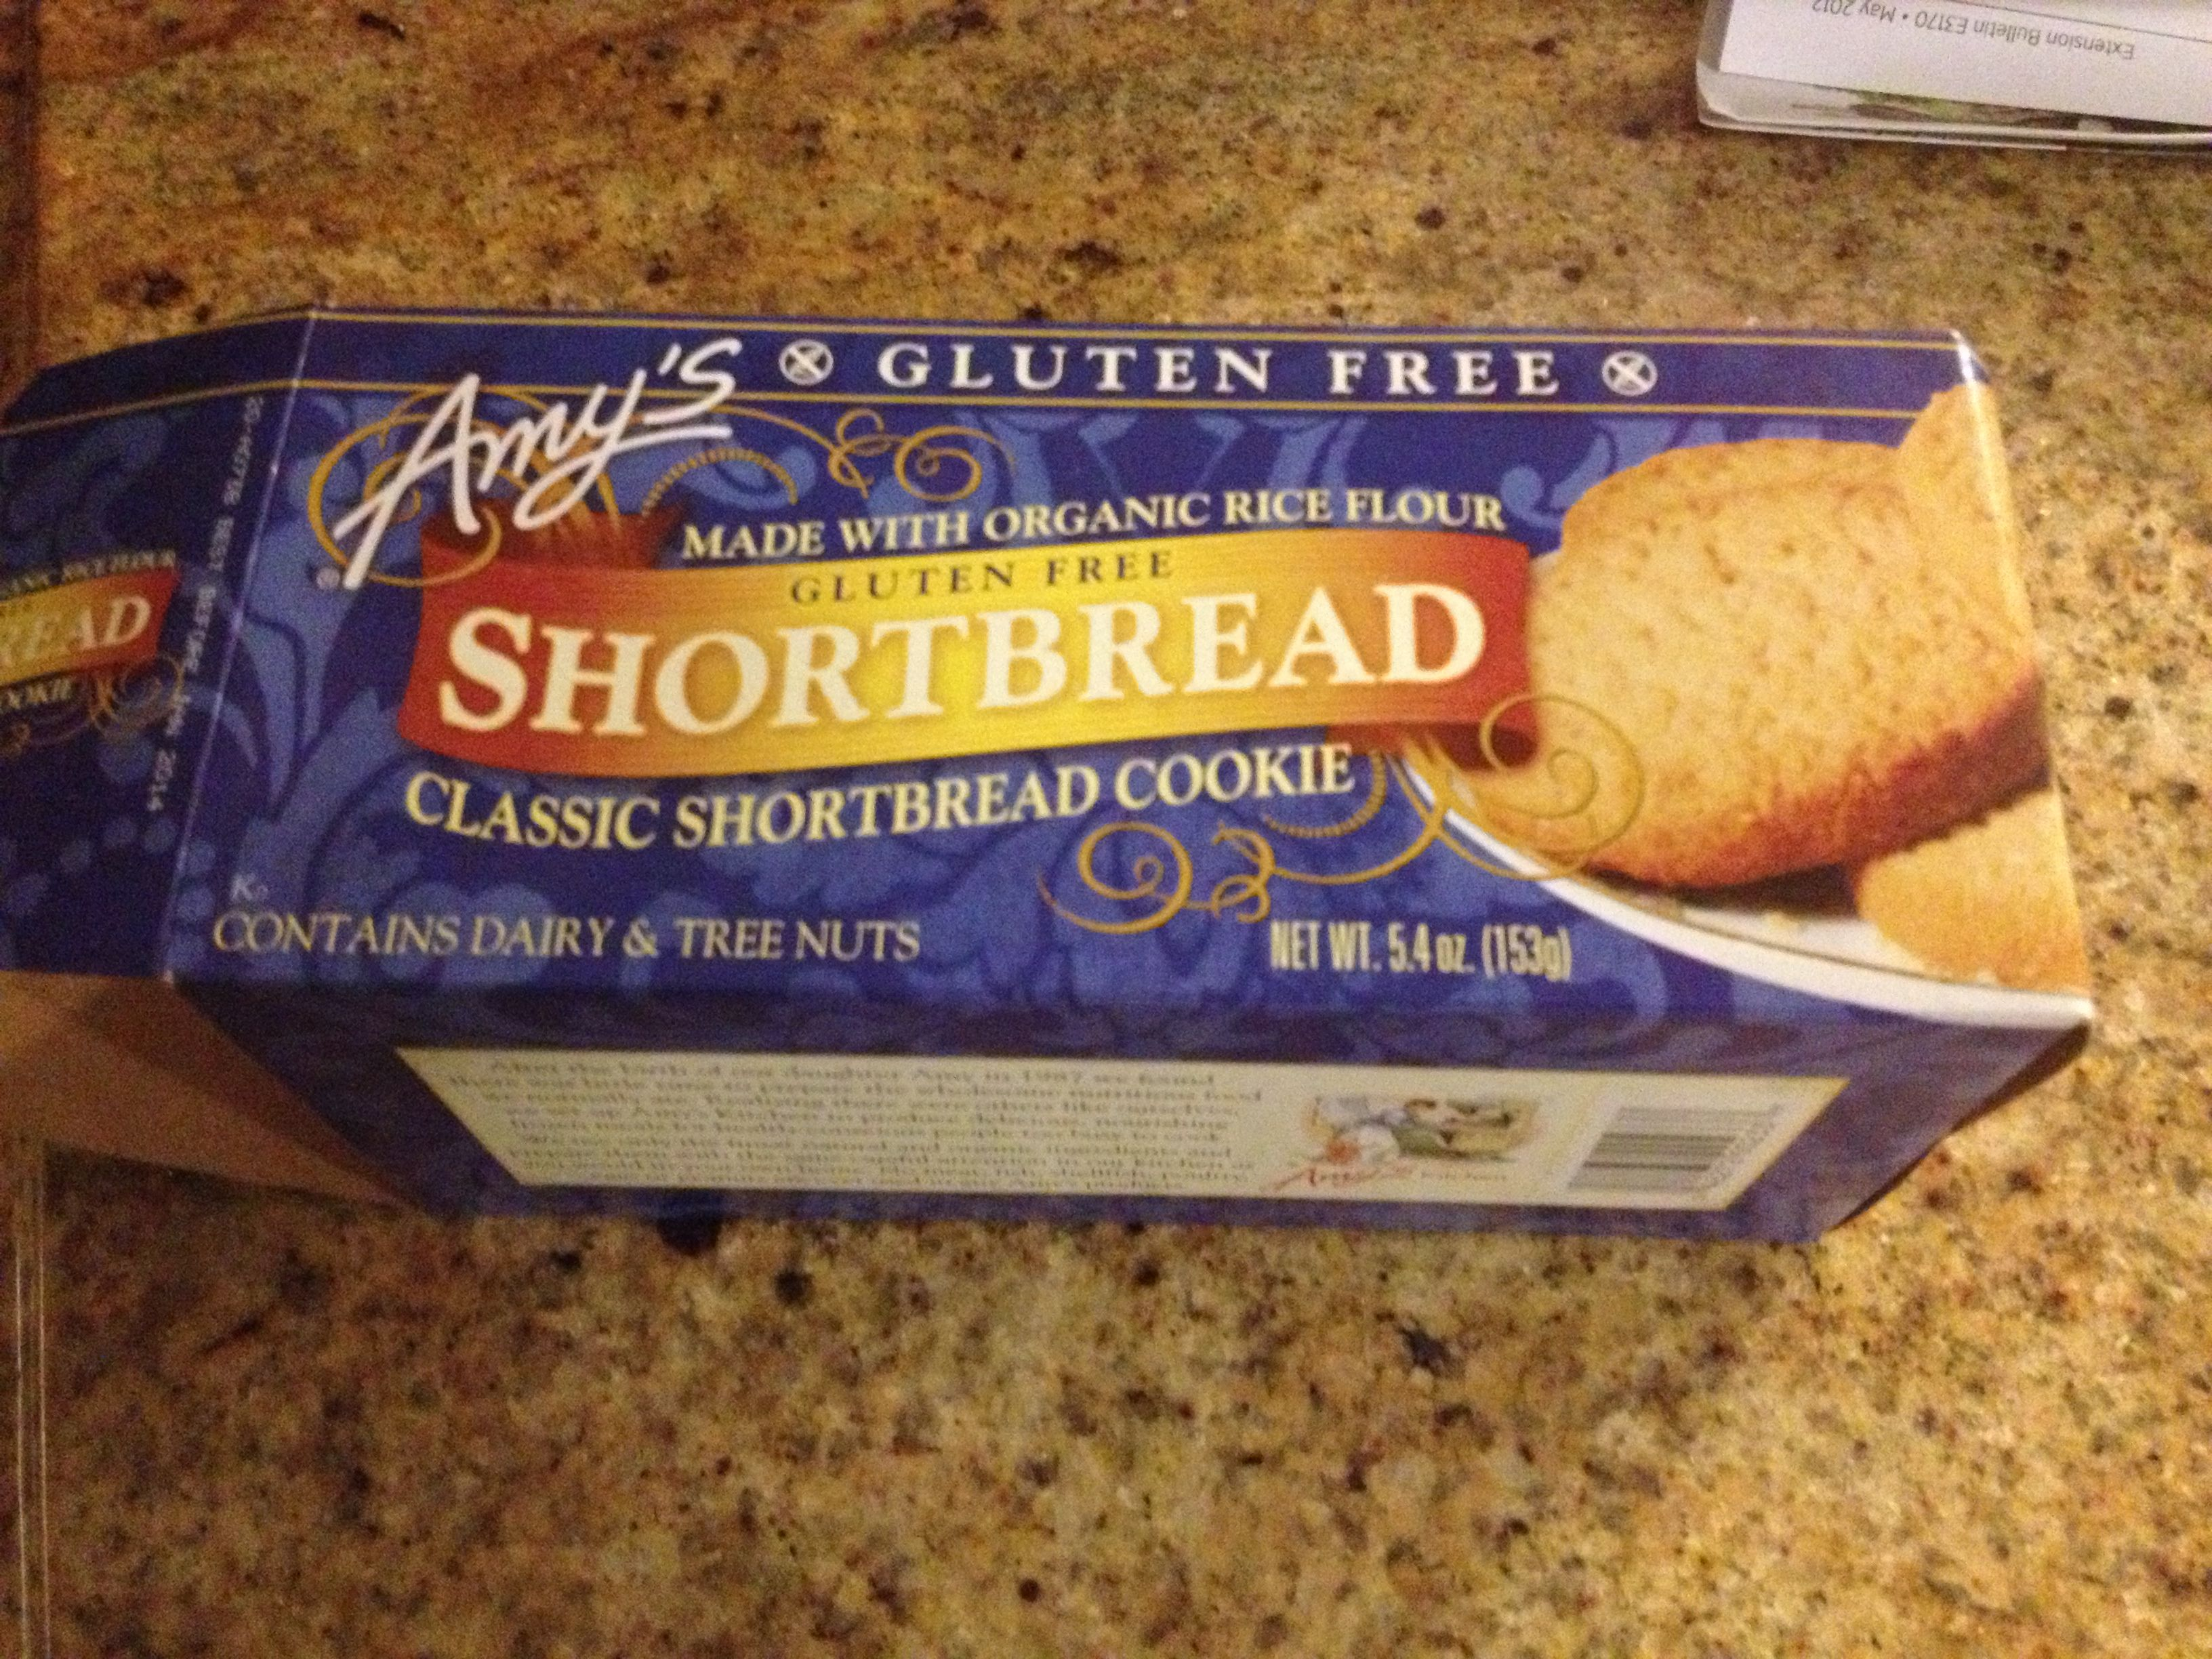 gluten free shortbread cookie | Gluten Free Products, Reads, and Plac ...